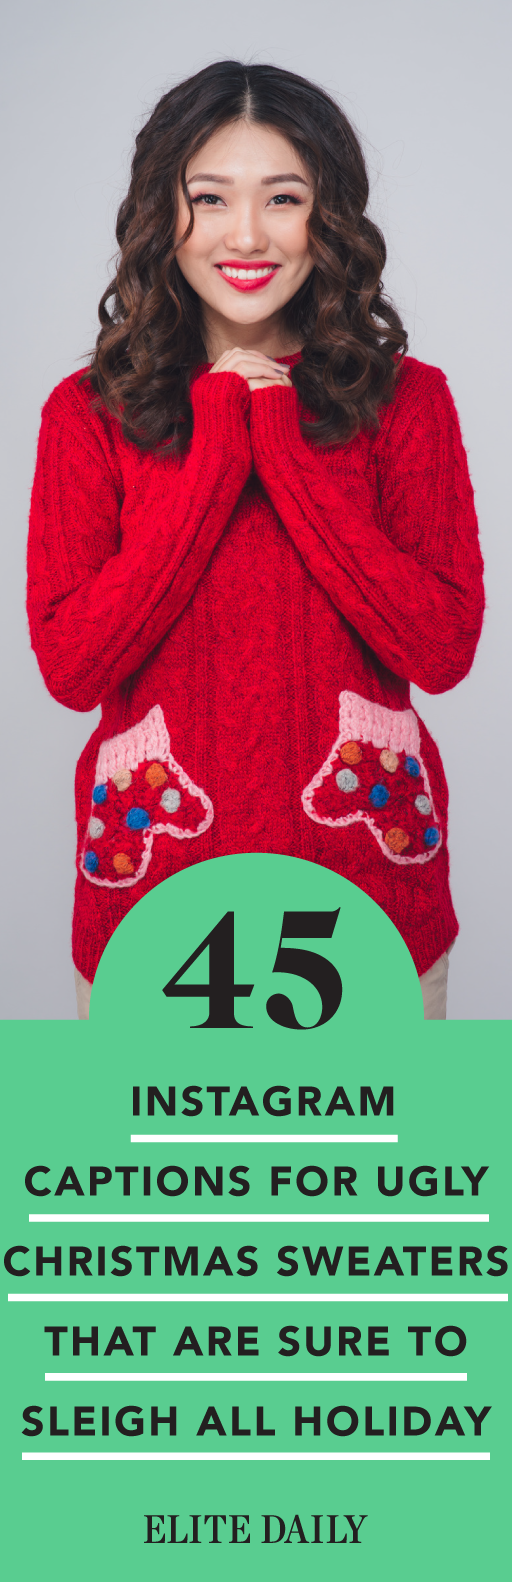 87bc9ad6 Christmas Captions For Instagram, Hannukah, Kwanzaa, Ugly Sweater, Ugly  Christmas Sweater,